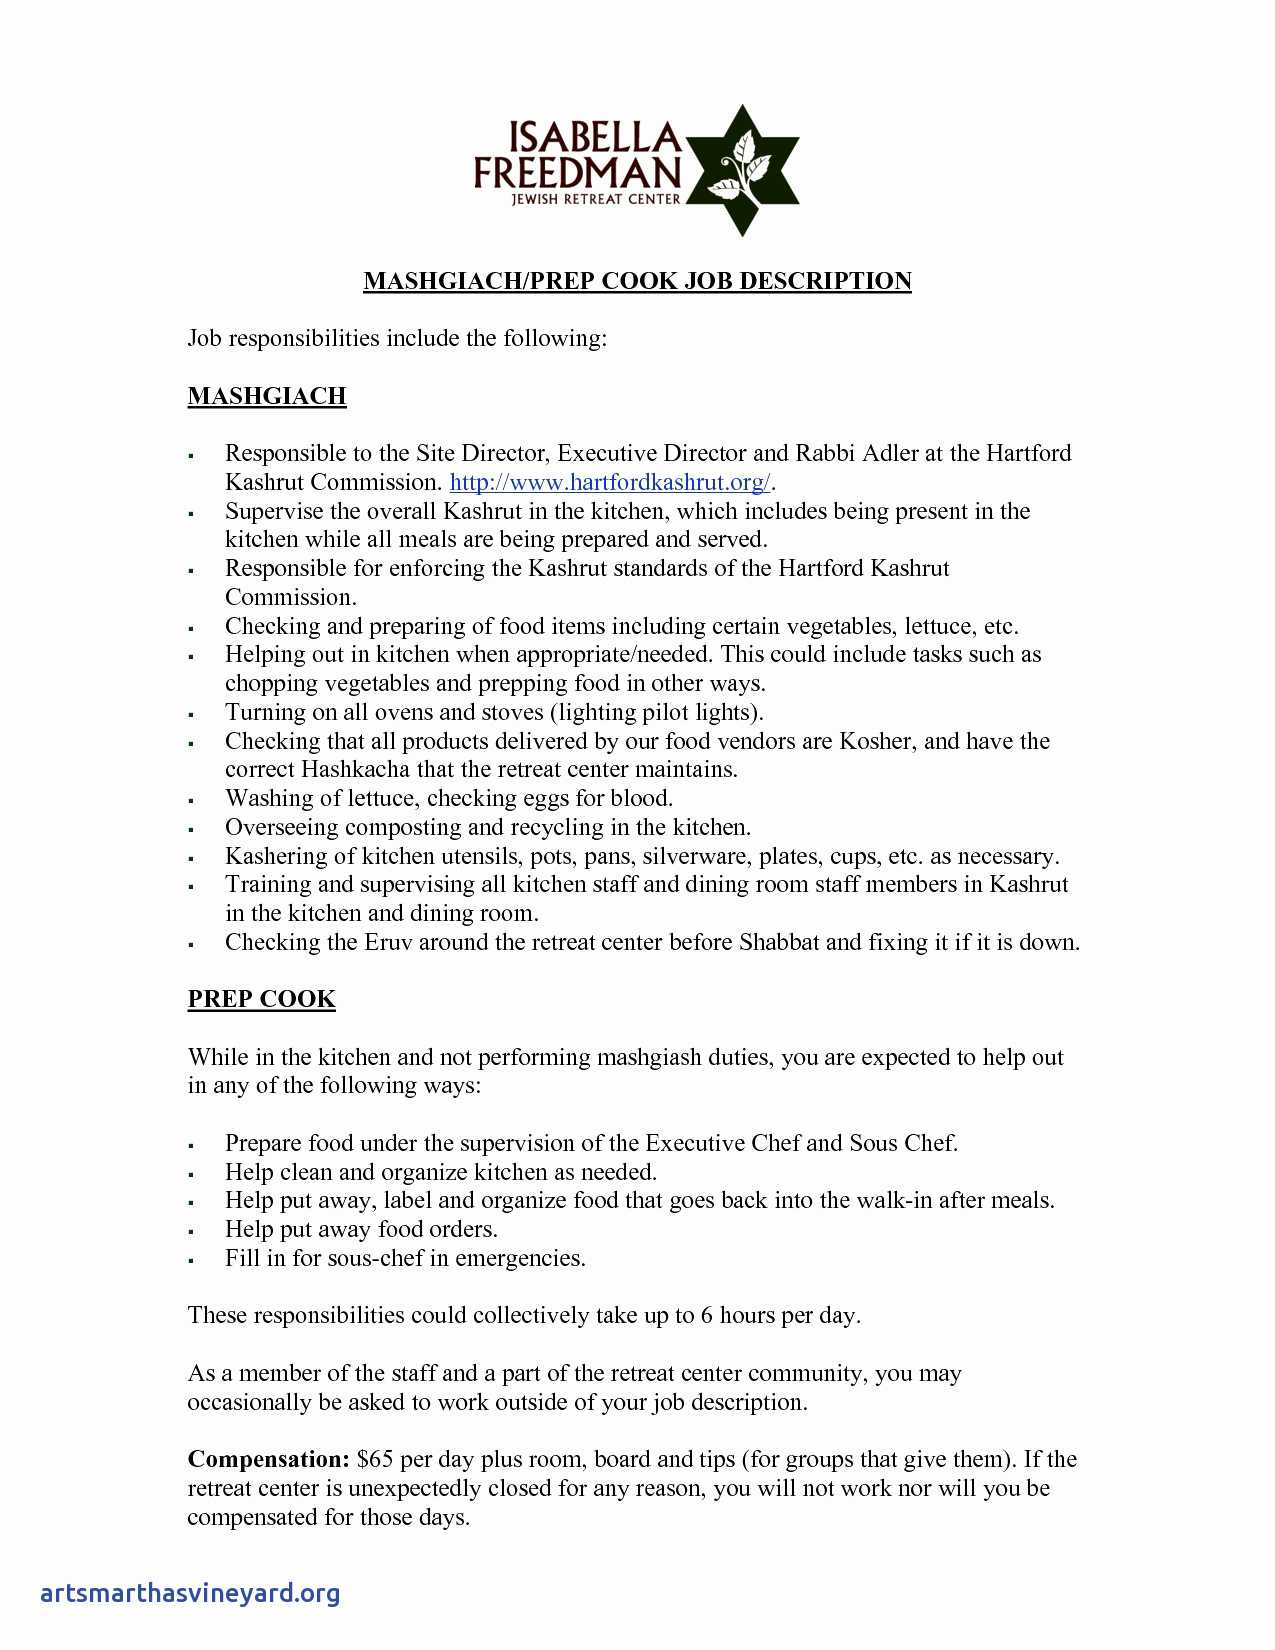 Free Online Resume Cover Letter Template - Resume Doc Template Luxury Resume and Cover Letter Template Fresh Od